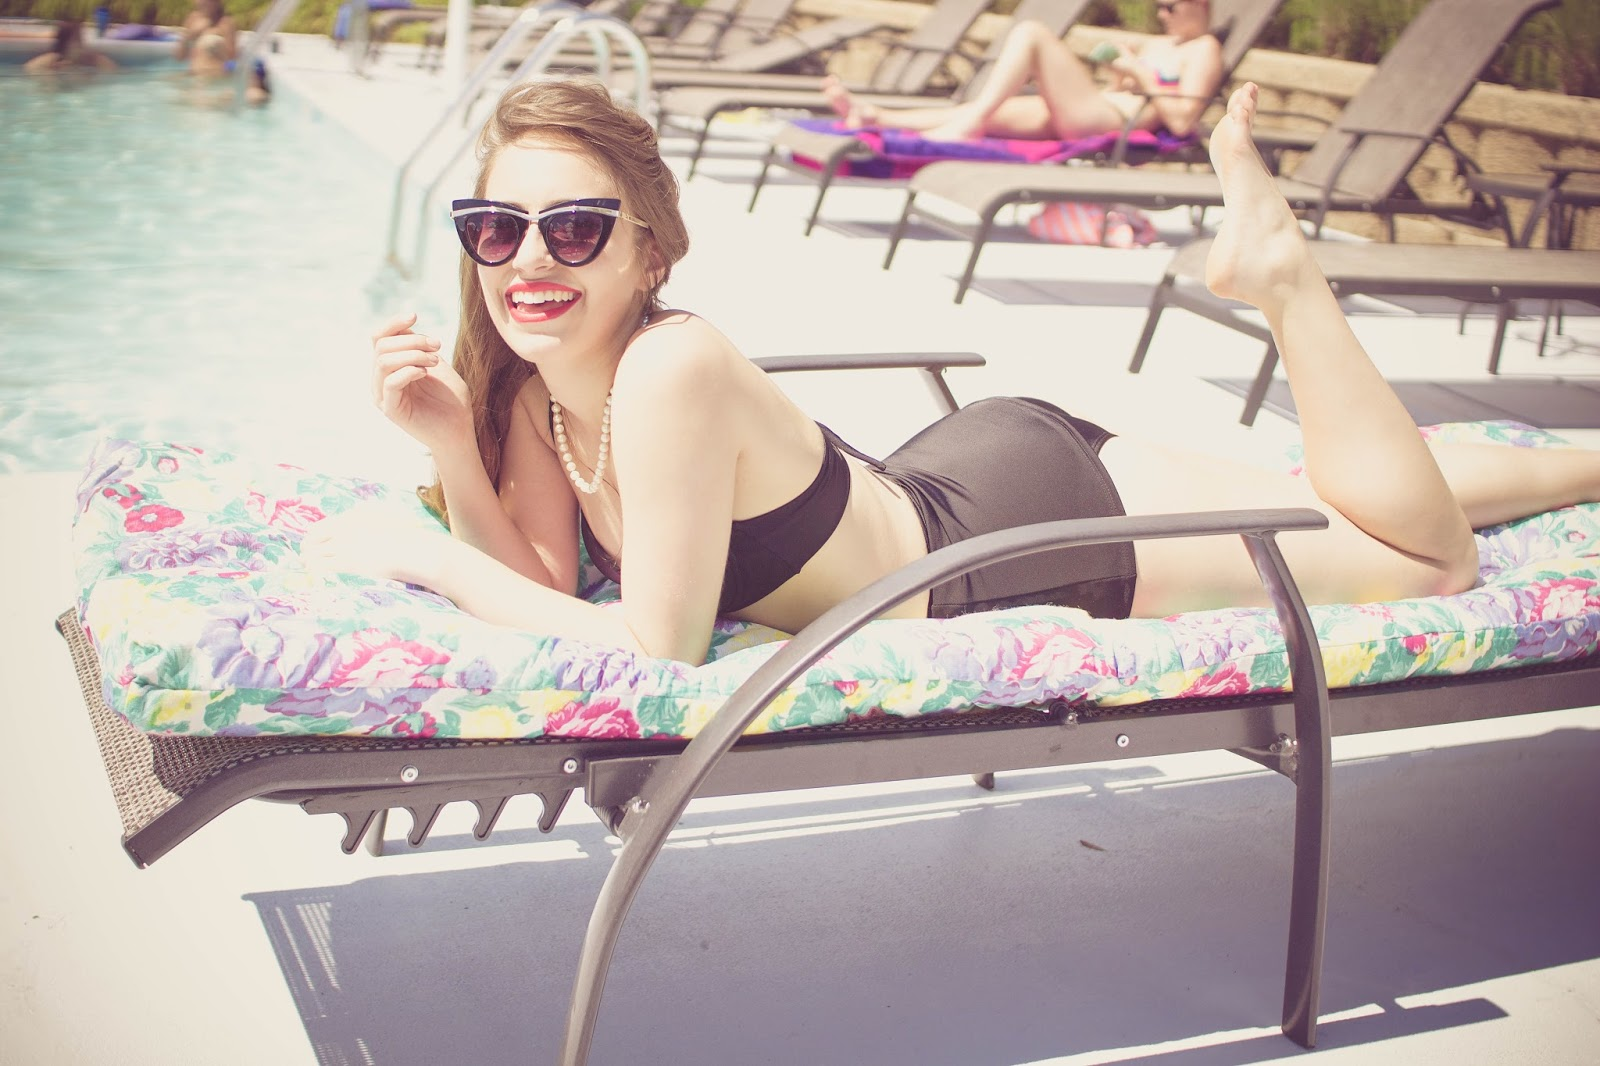 retro, style, fashion blogger, high waist bathing suit, vintage, retro bathing suit, vintage bathing suit, taylor swift style, glamorous, old hollywood, 1950s style, 1960's stye, fashion blogger, film blogger, cat eye sunglasses, asos,